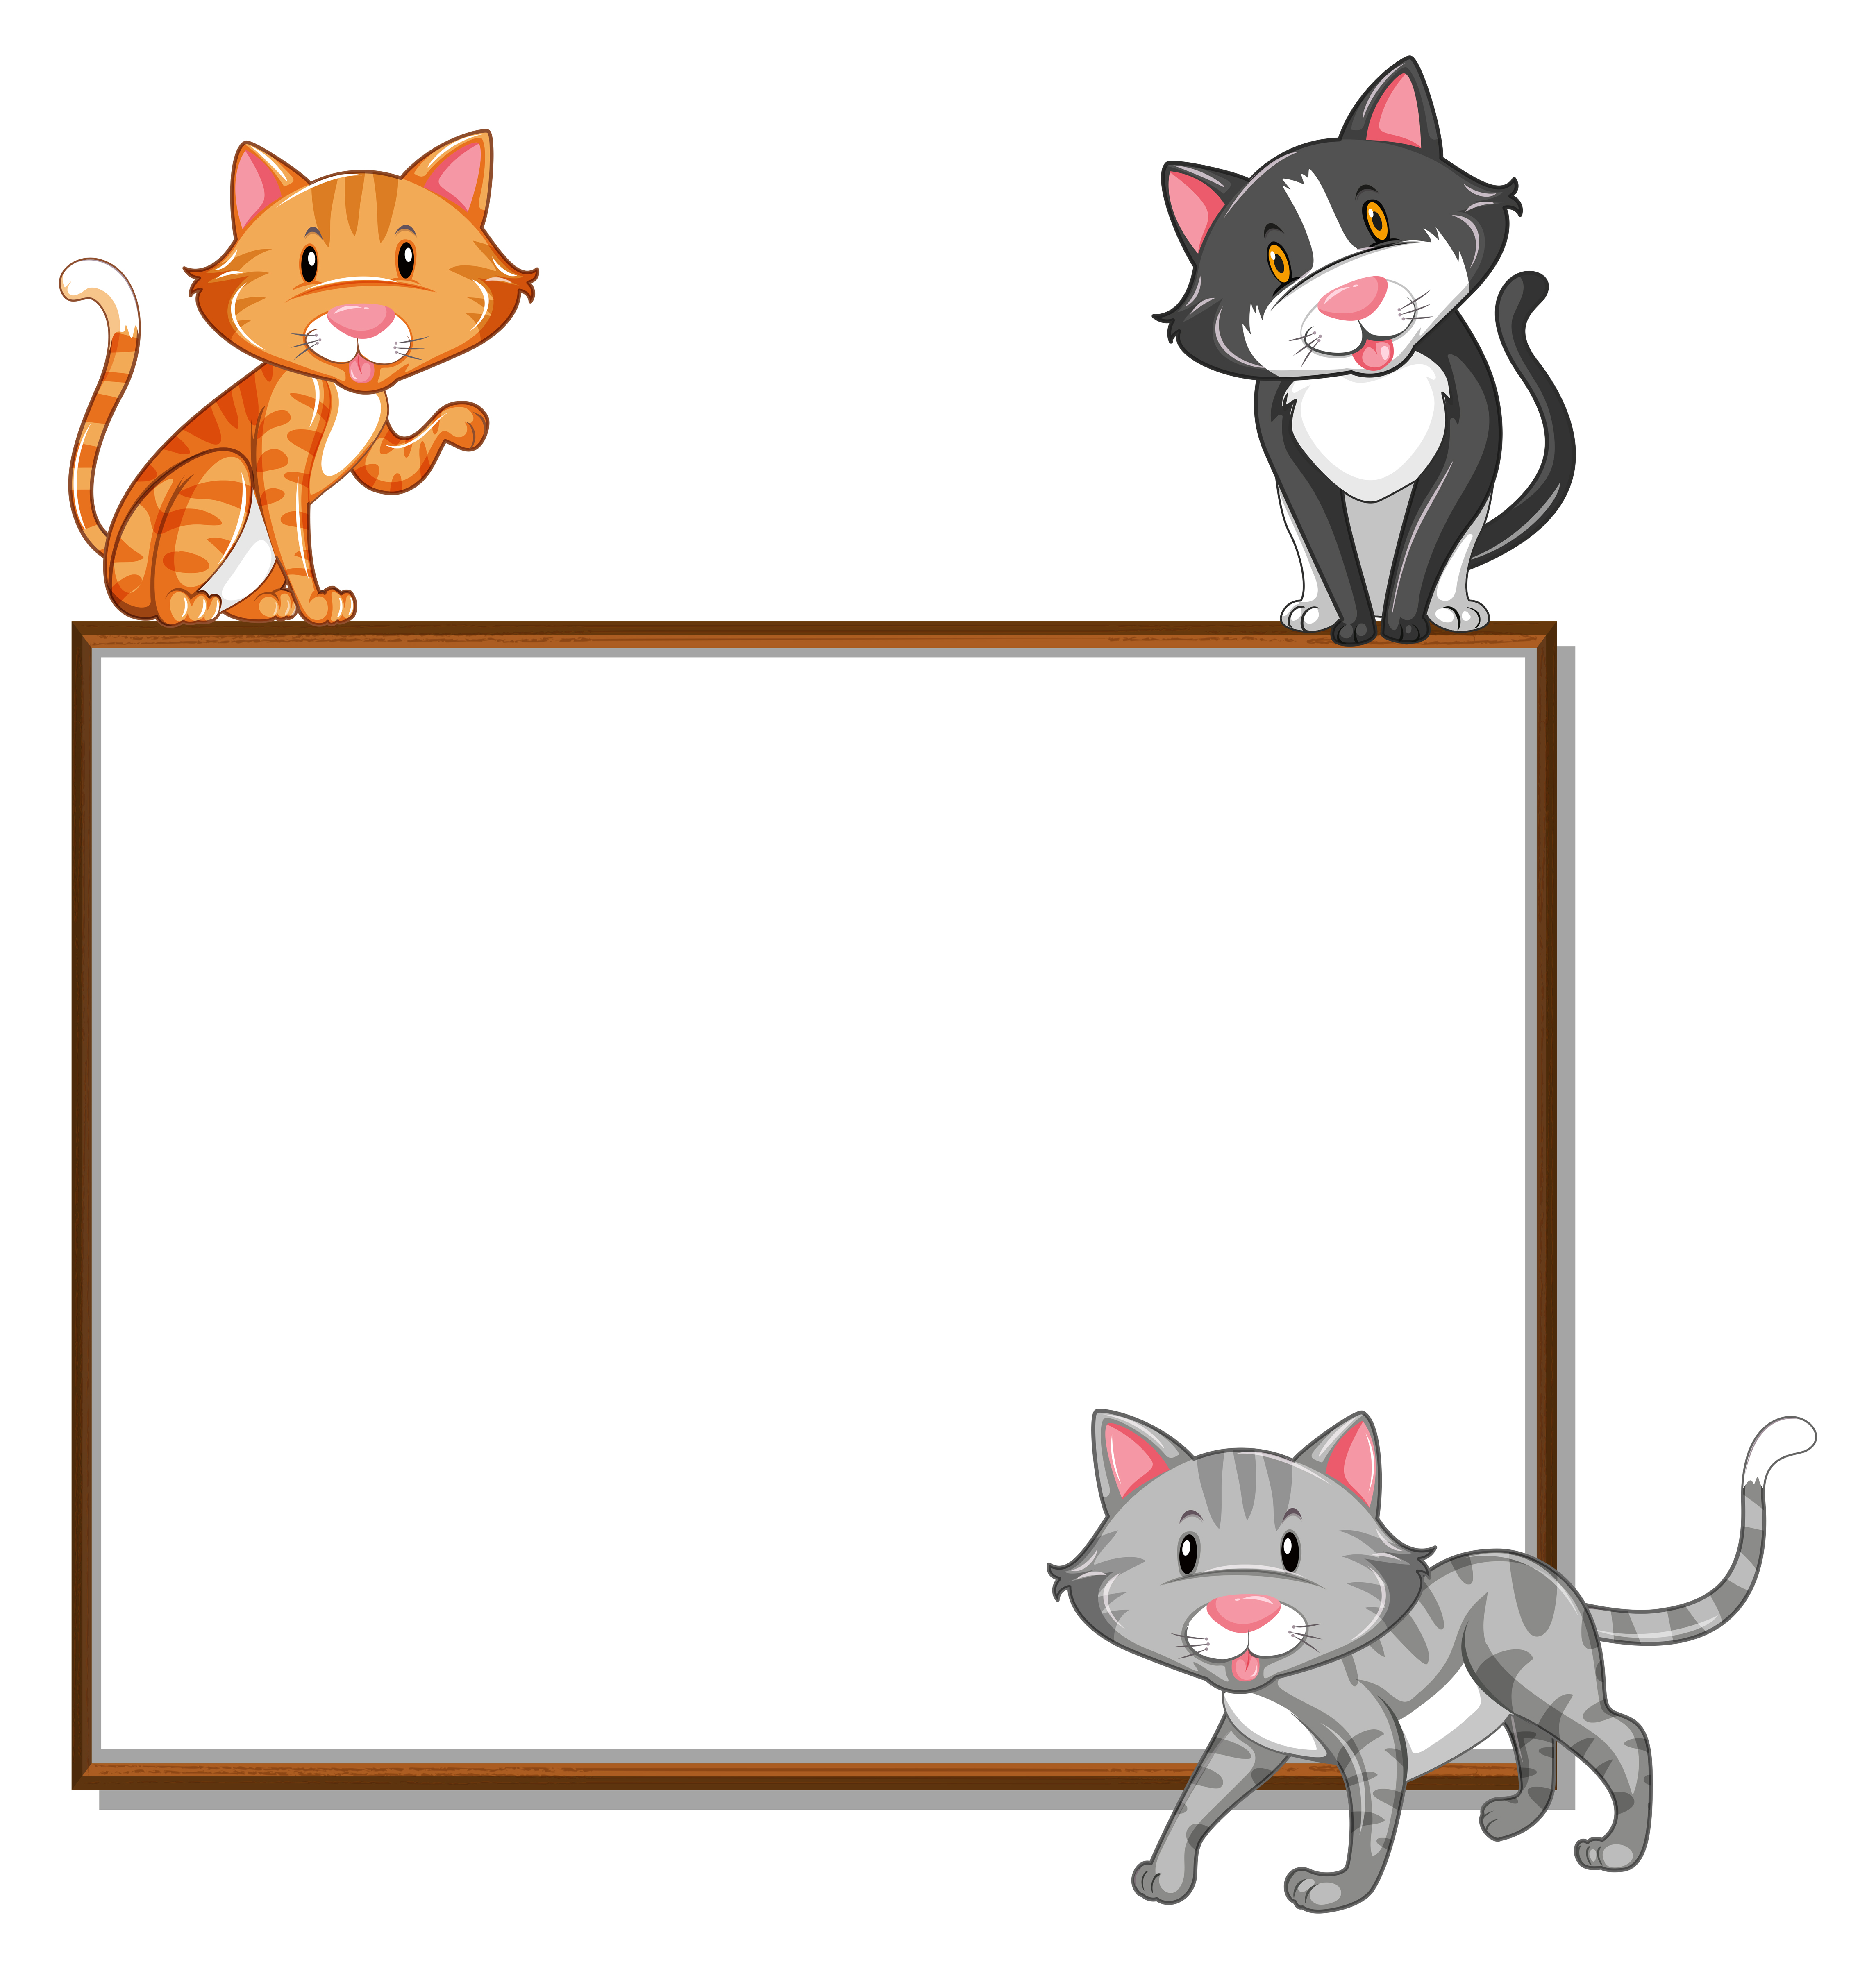 Border Template With Three Cats Download Free Vectors